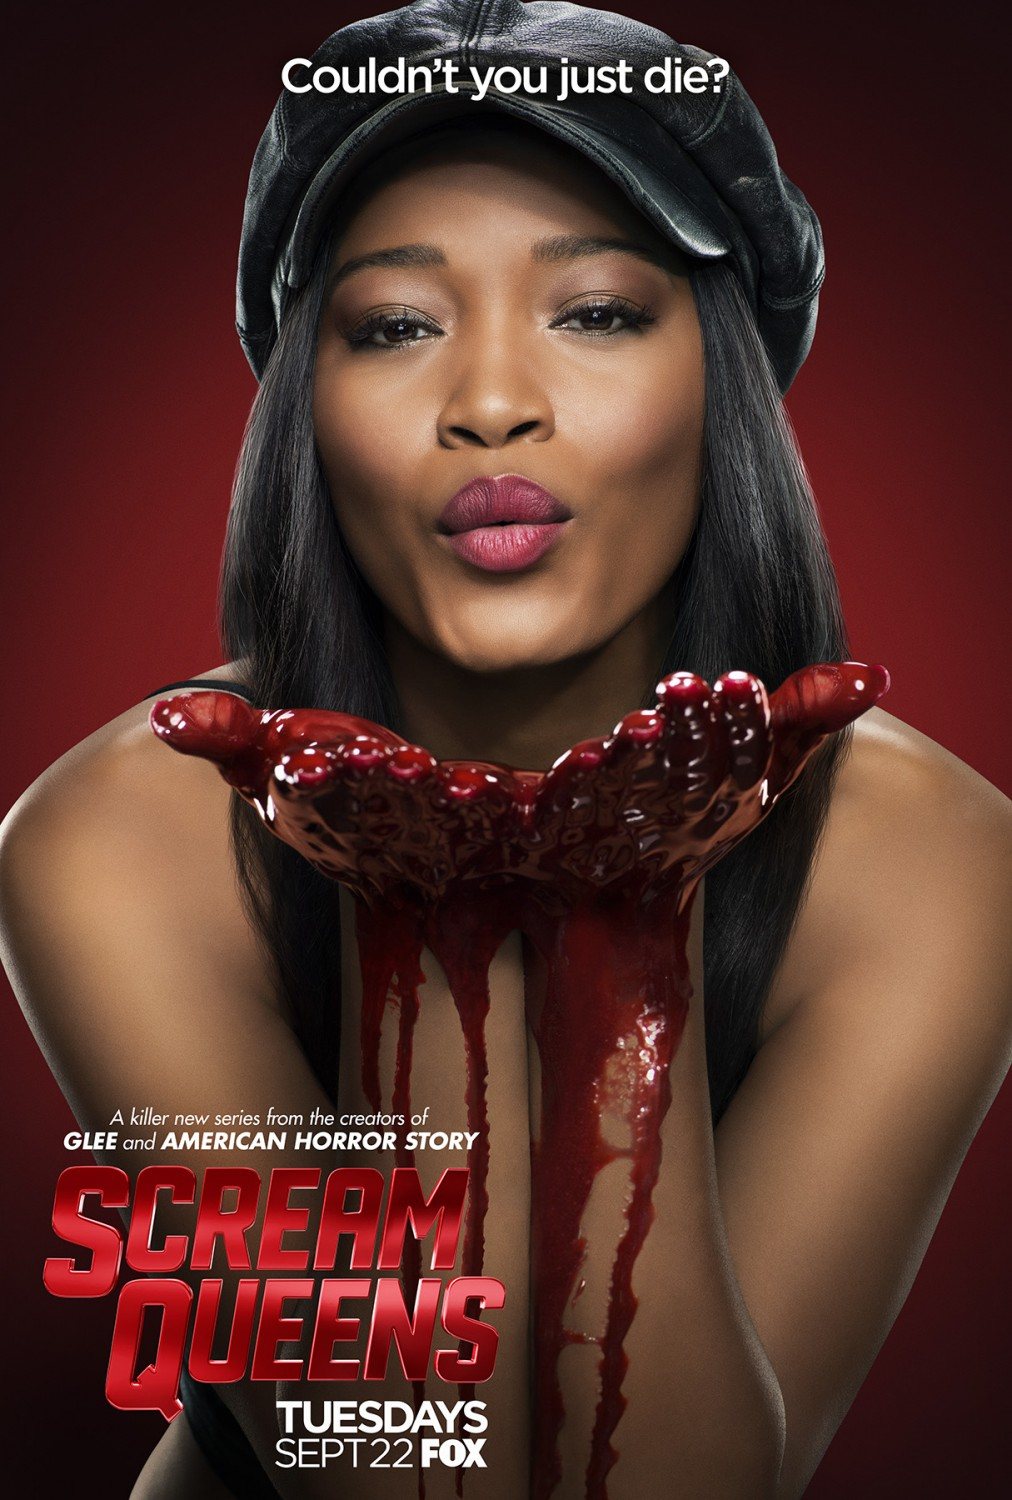 scream queens character posters look a bit guilty